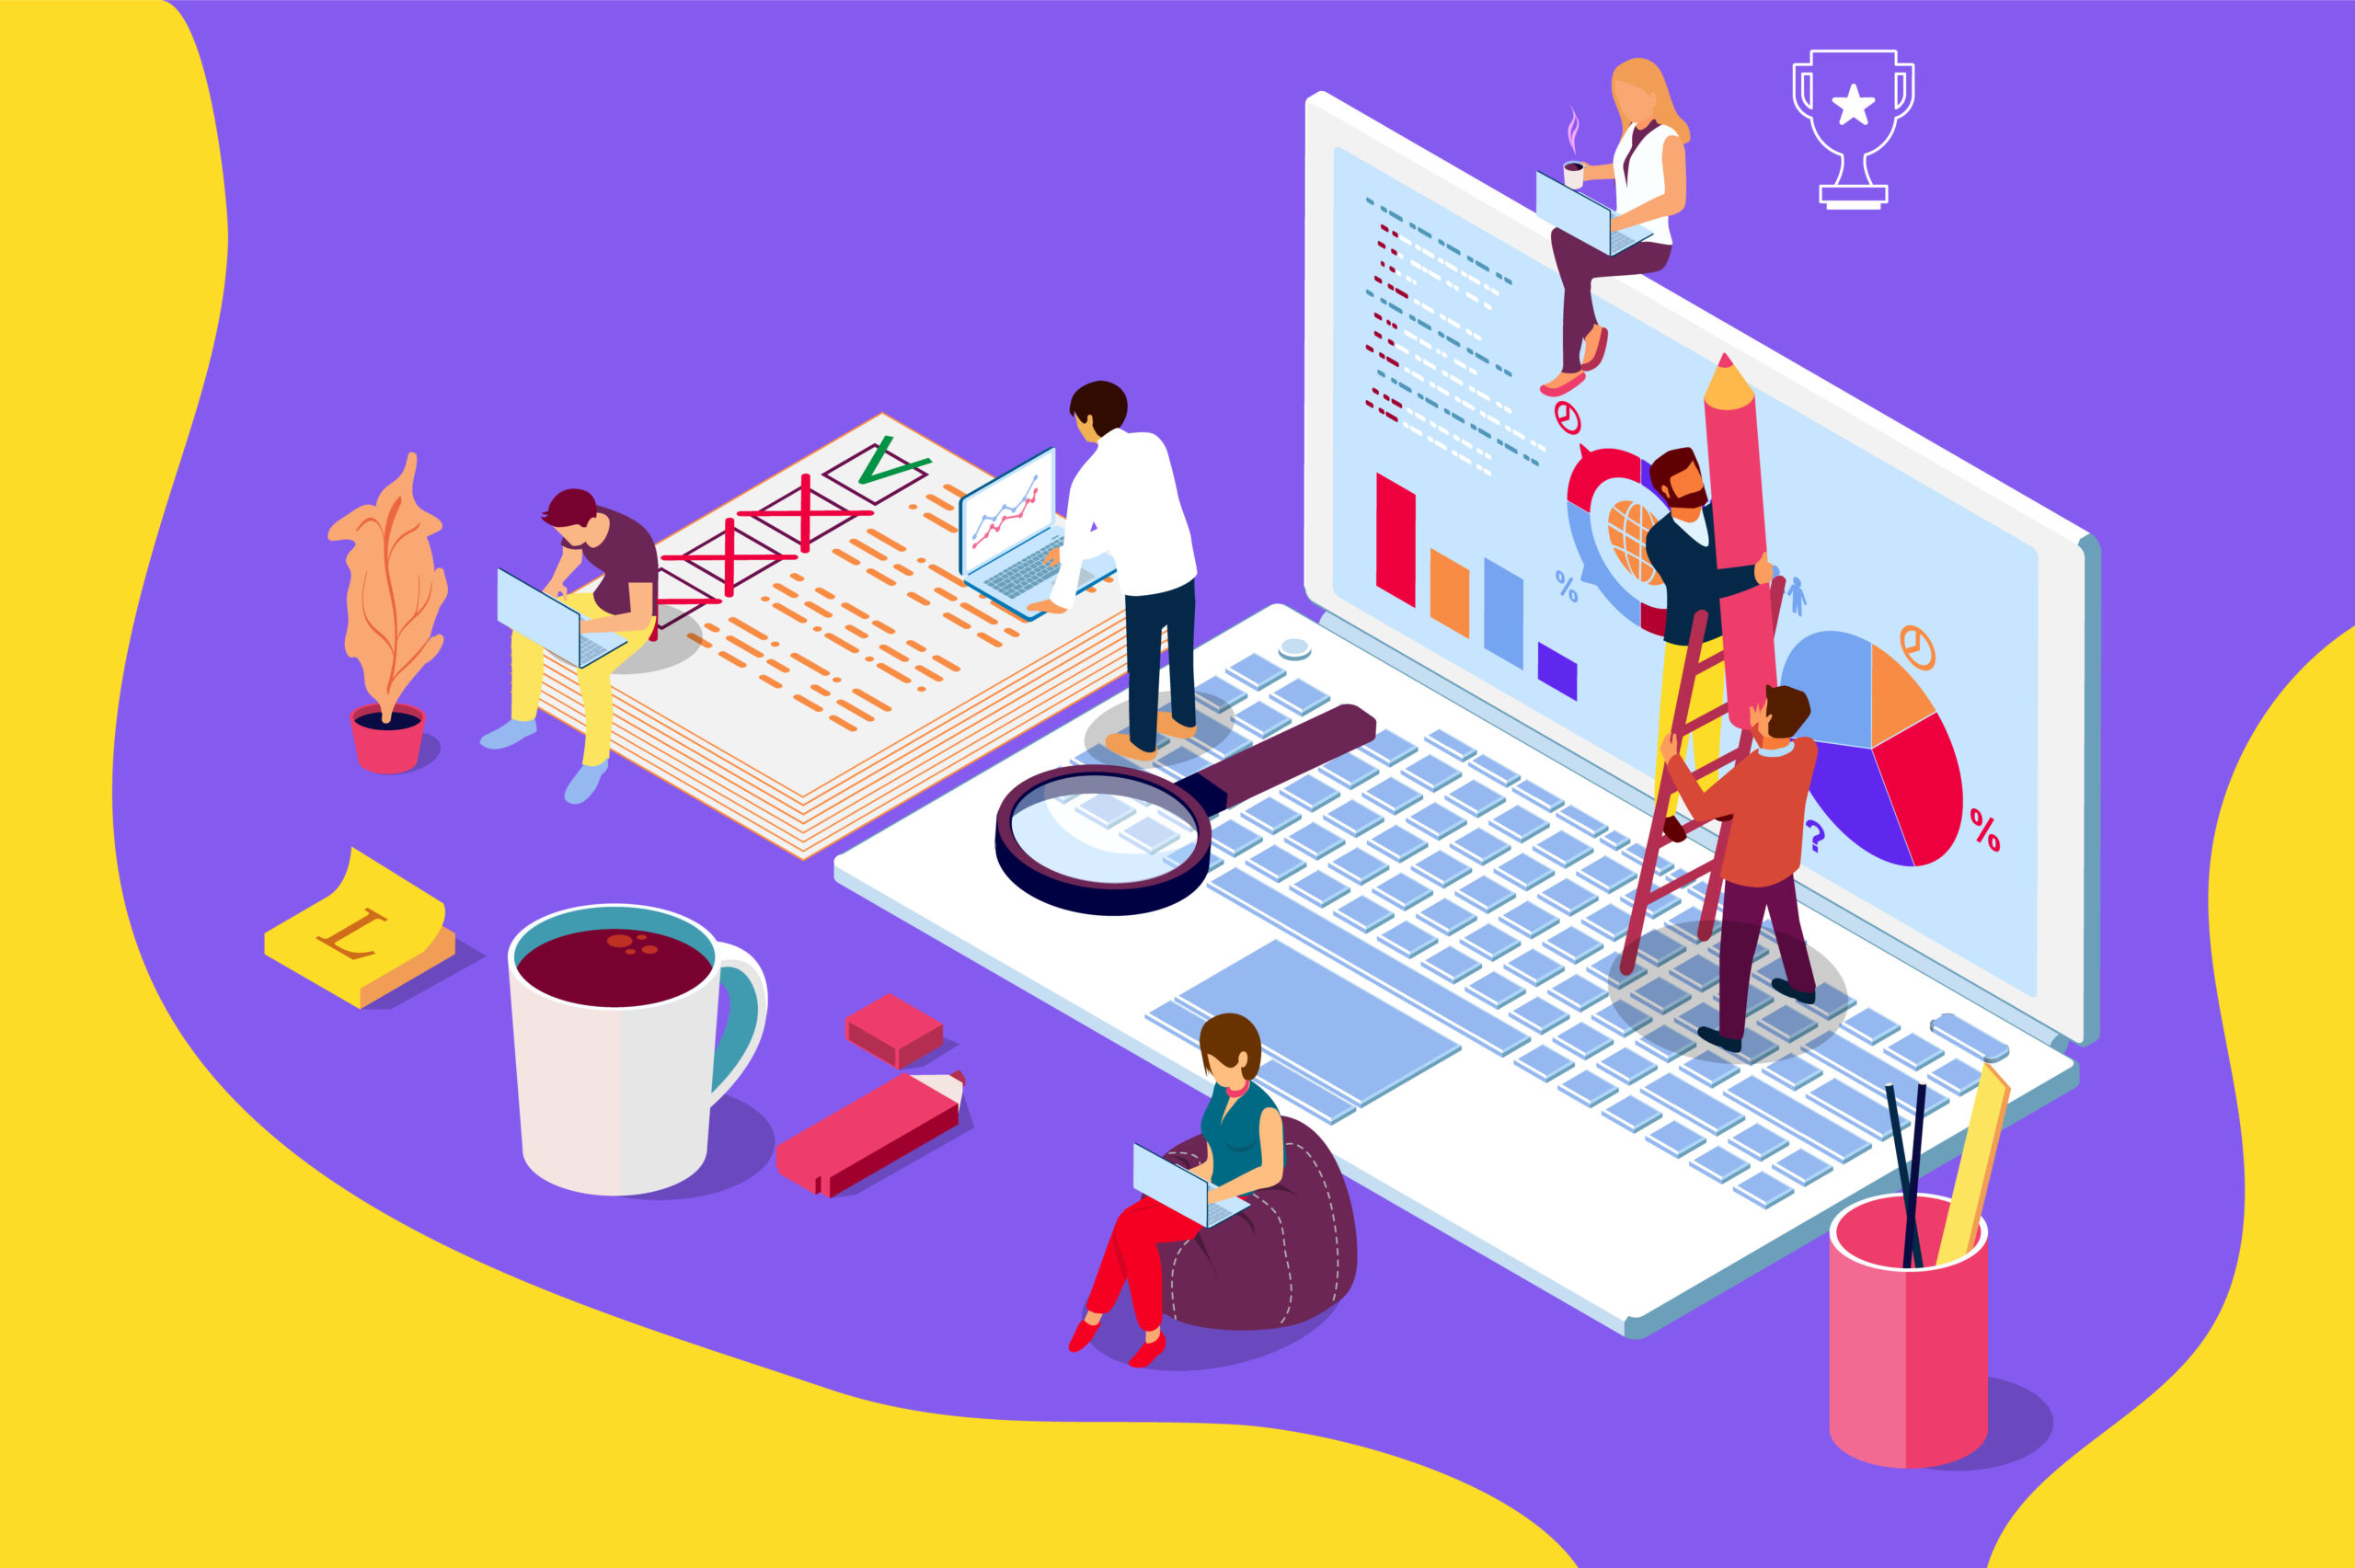 online review concept with characters. can use for web page, banner, social media, documents, cards, posters. flat isometric illustration